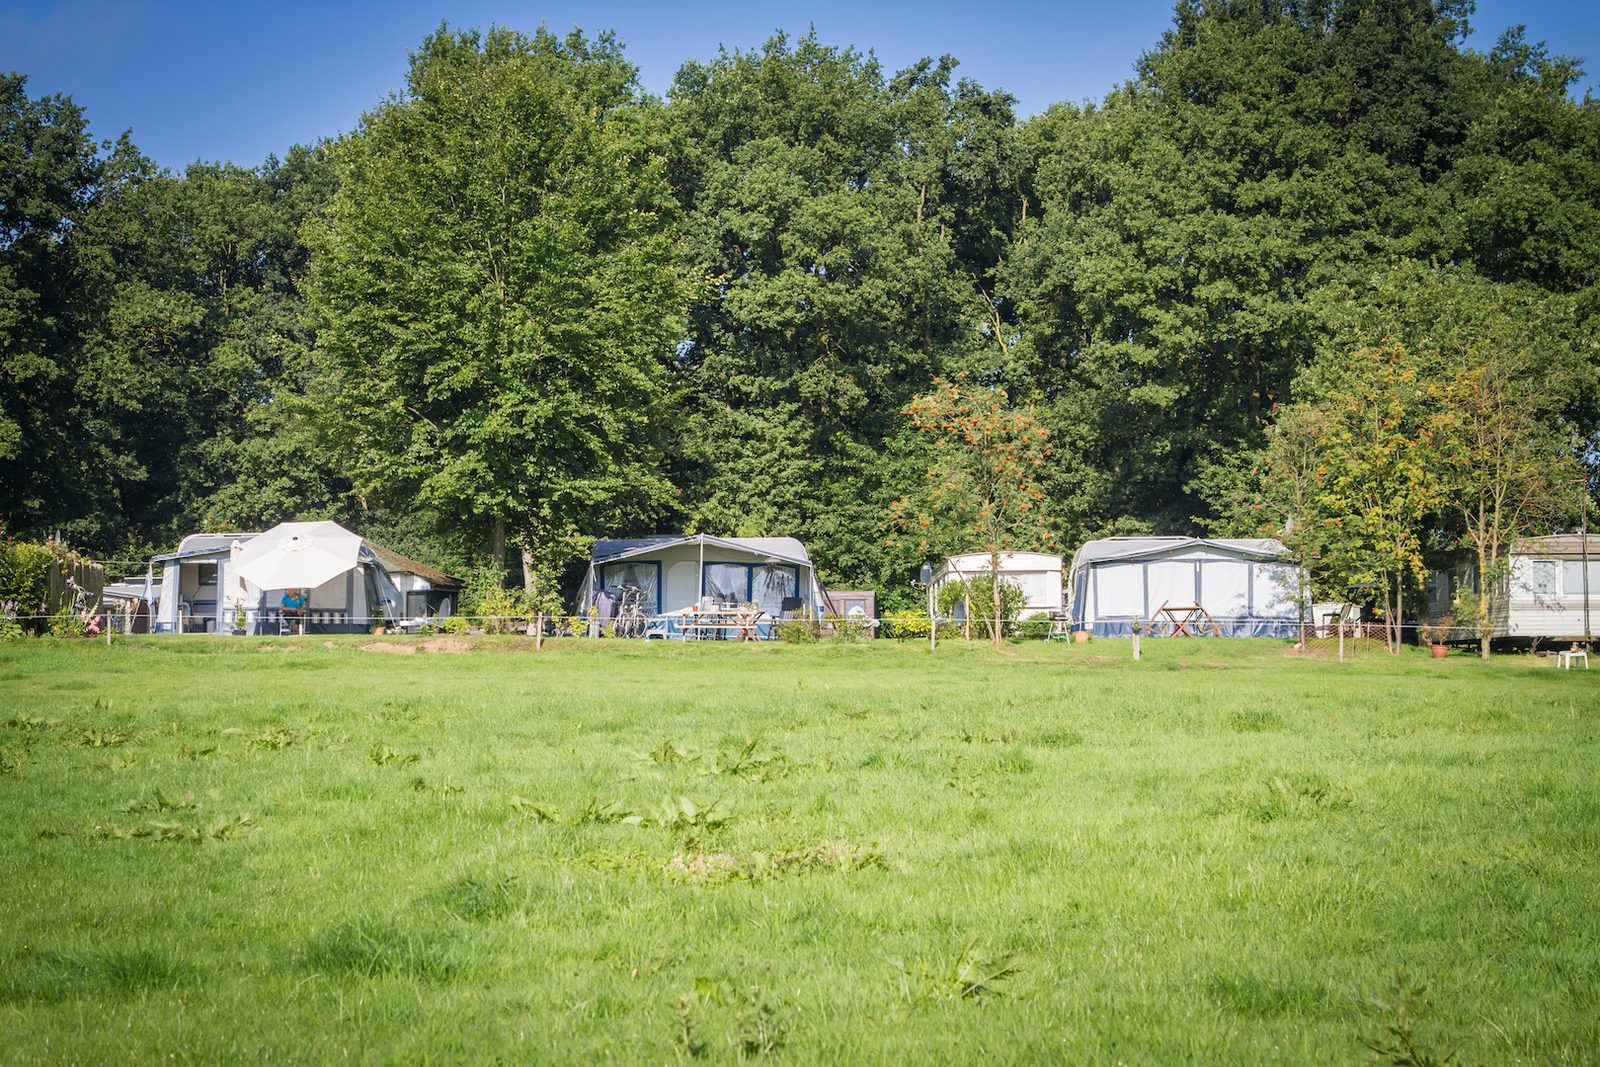 Camping Tubbergen